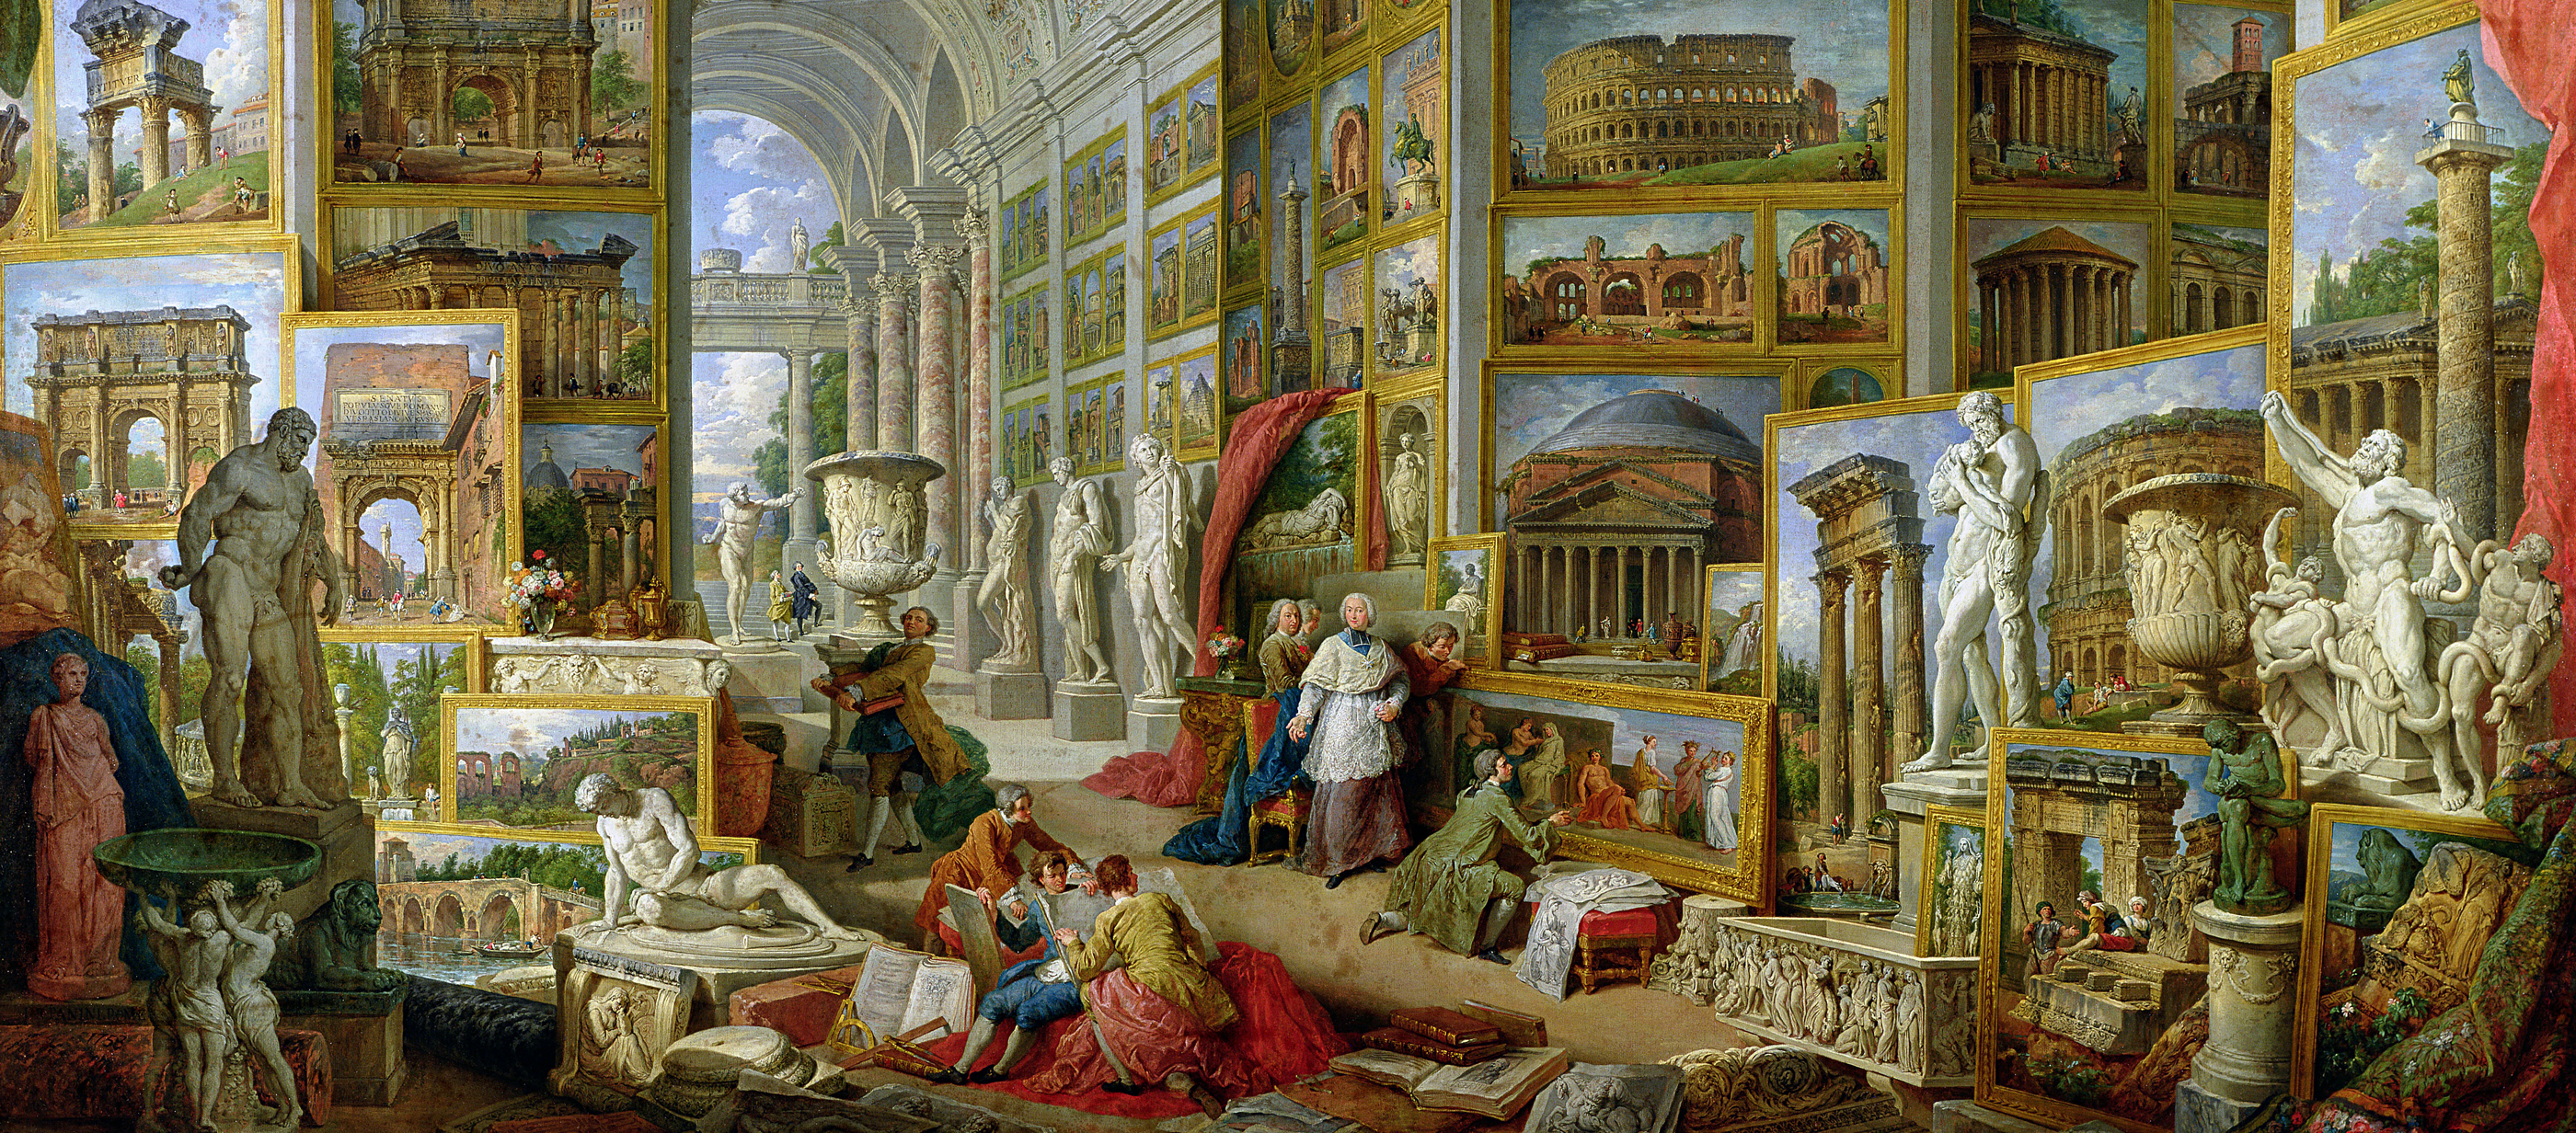 Painting showing an gallery with many paintings of Ancient Rome.